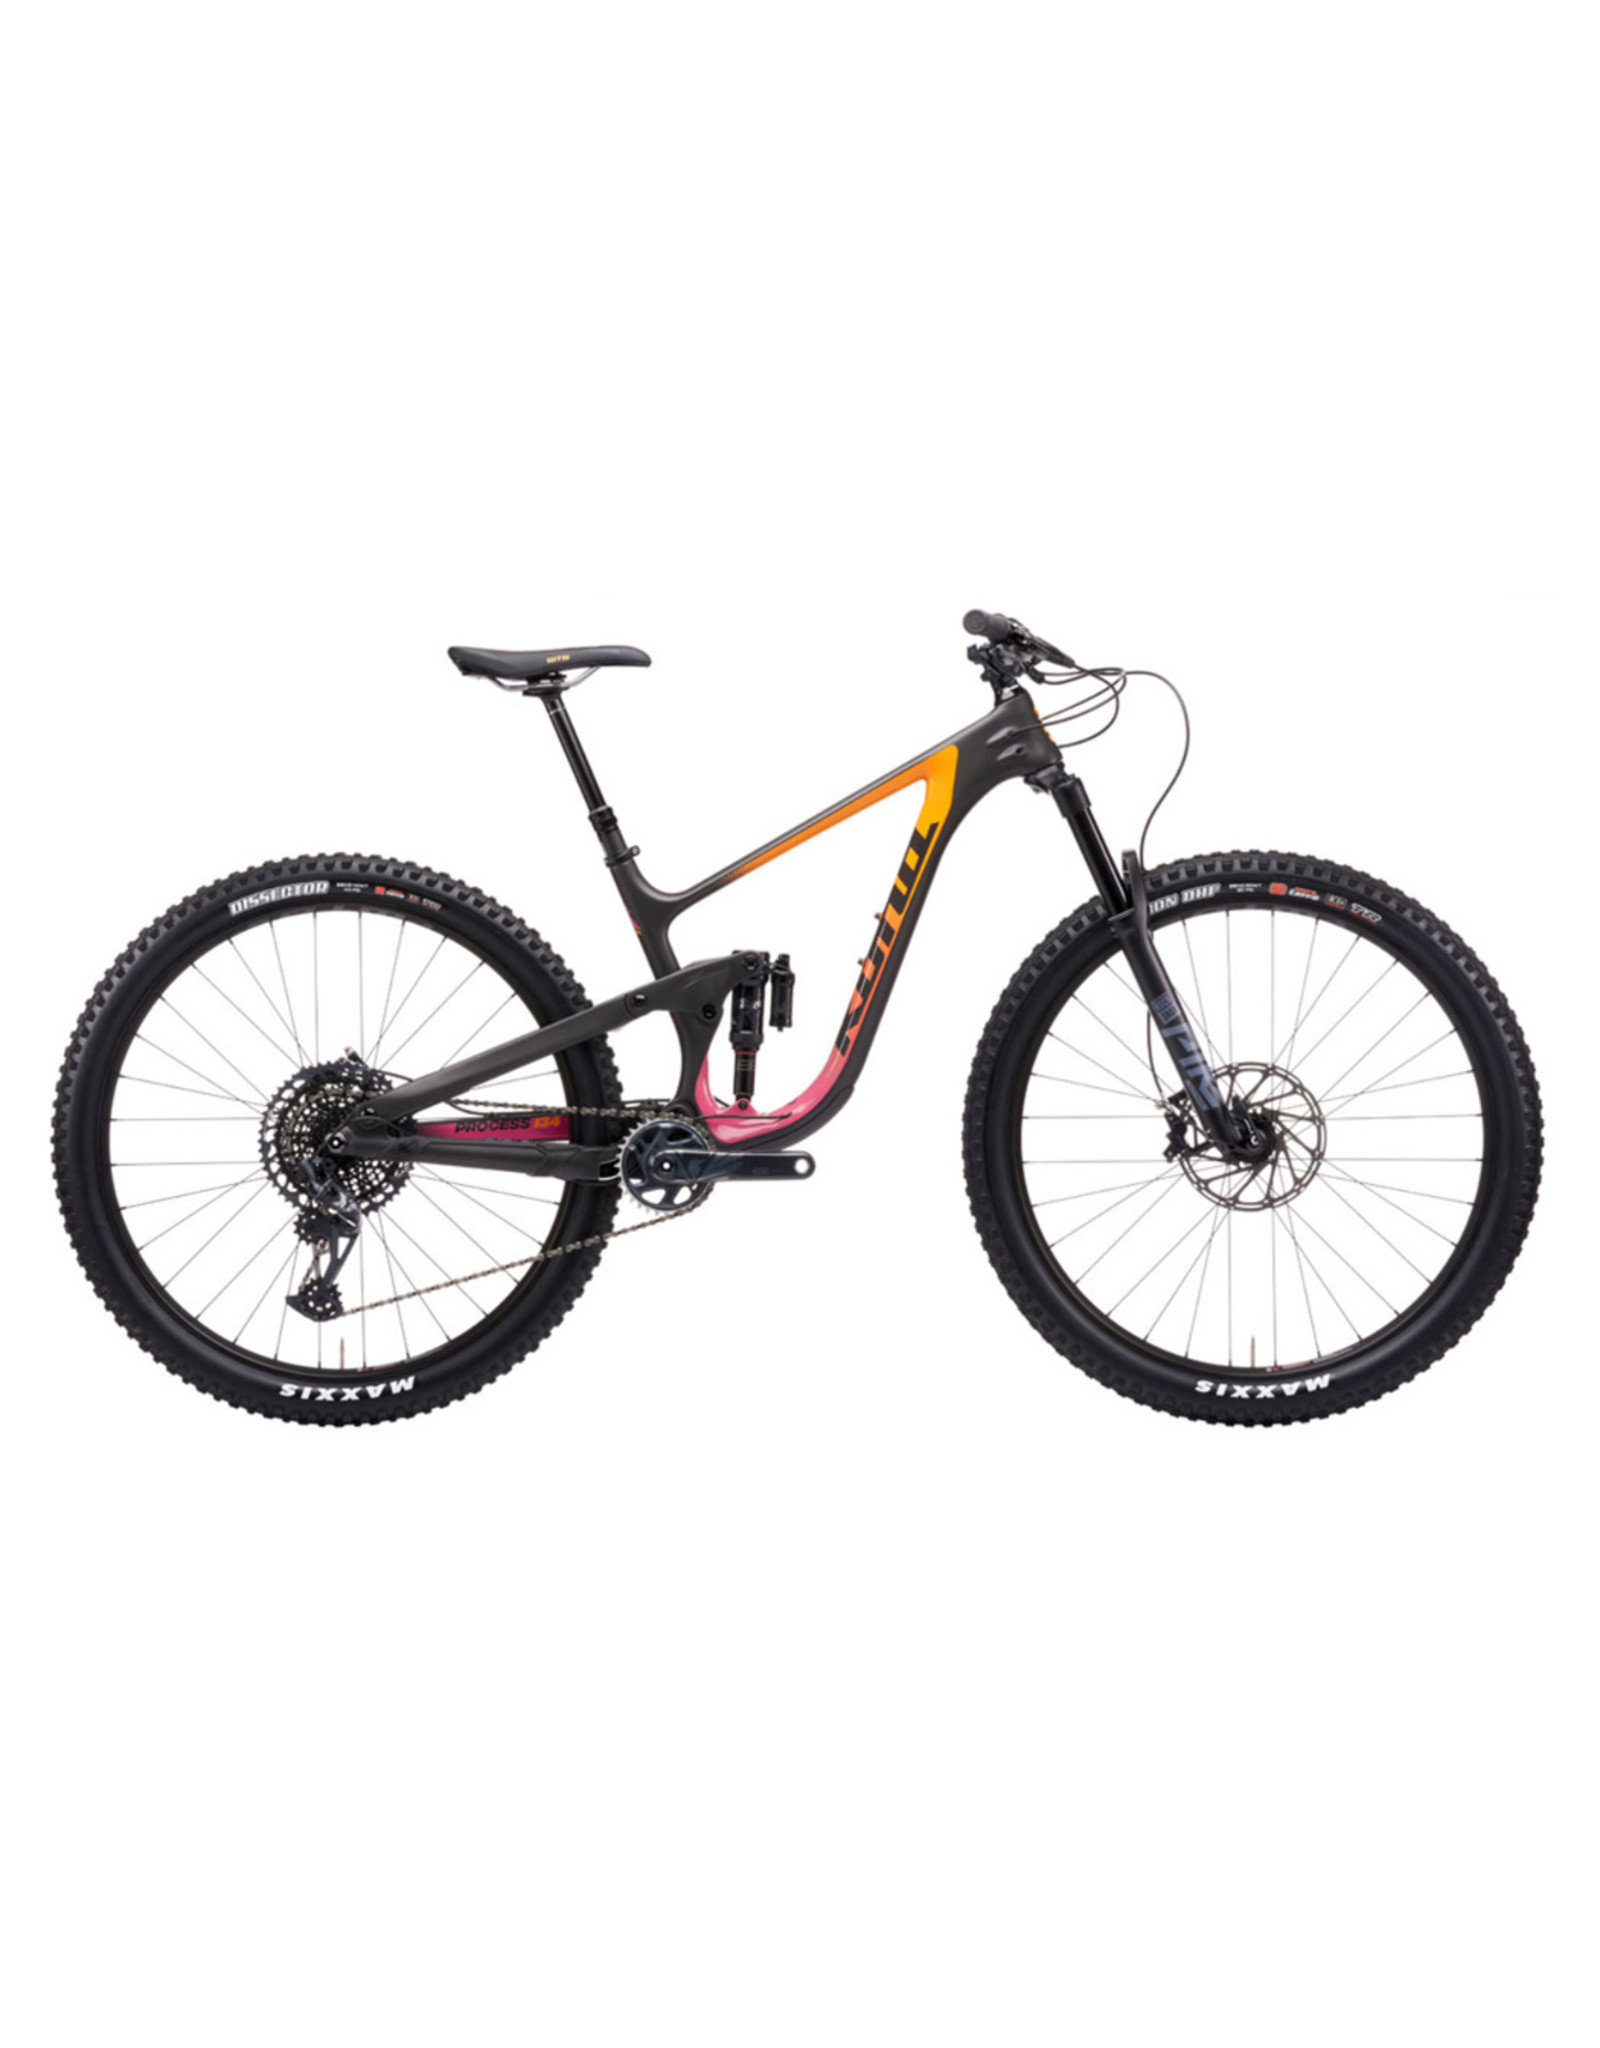 Kona Process 134 CR/DL 2021 MD